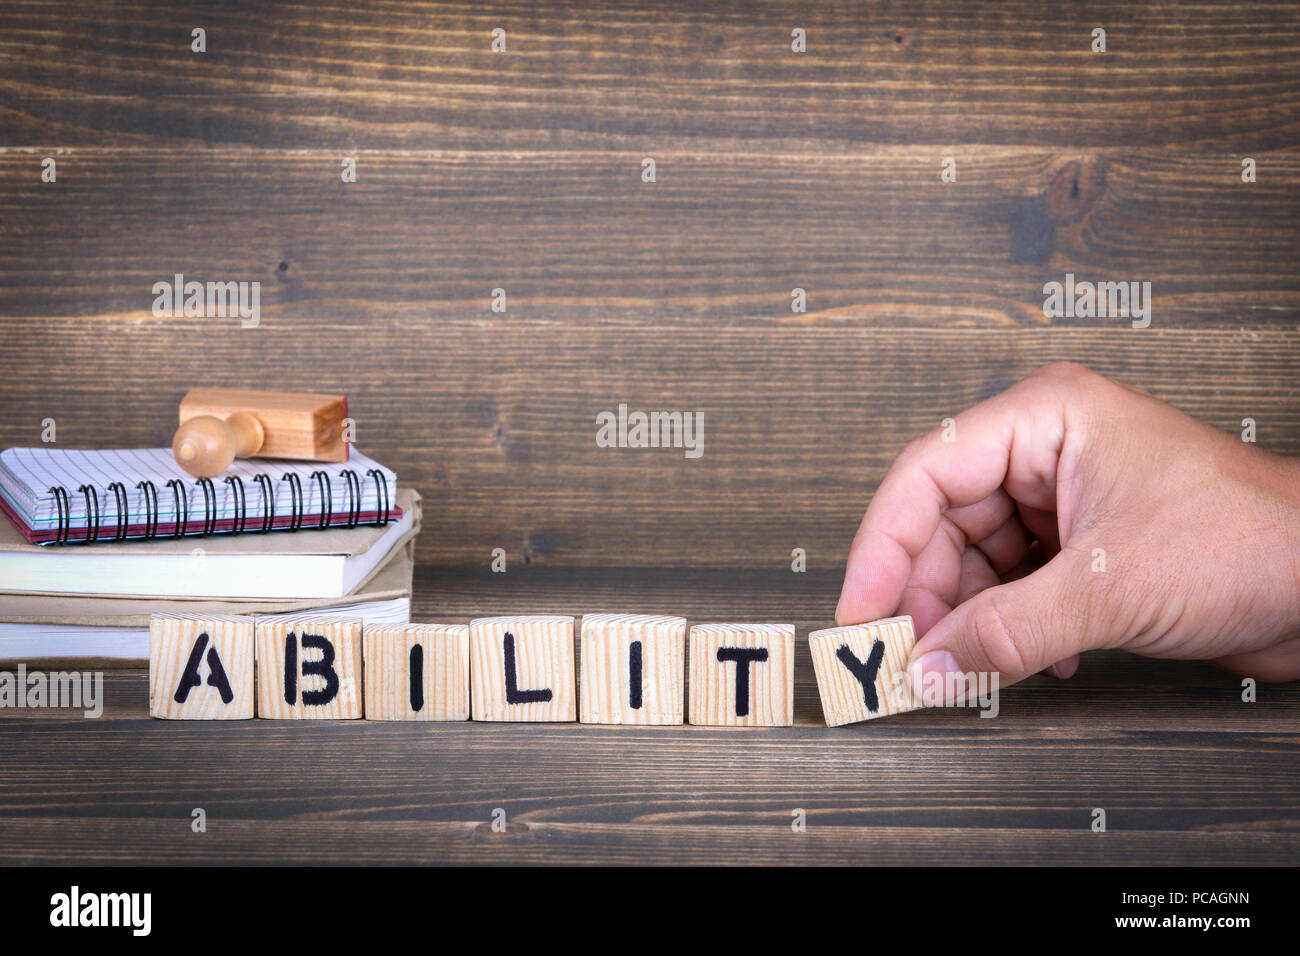 ability. wooden letters on the office desk - Stock Image